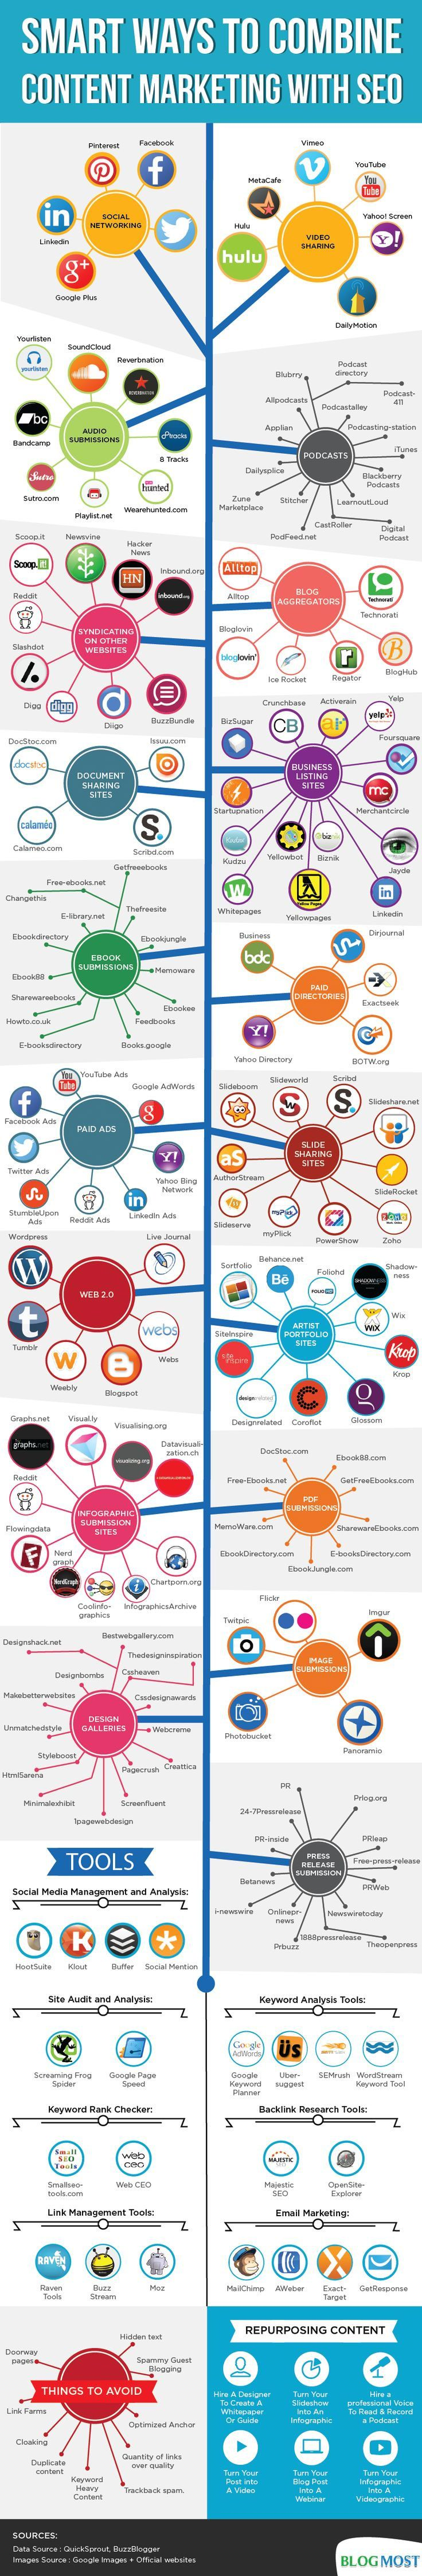 Website Magazine's WebMag.co provides infographics, videos and more for 'Net professionals.